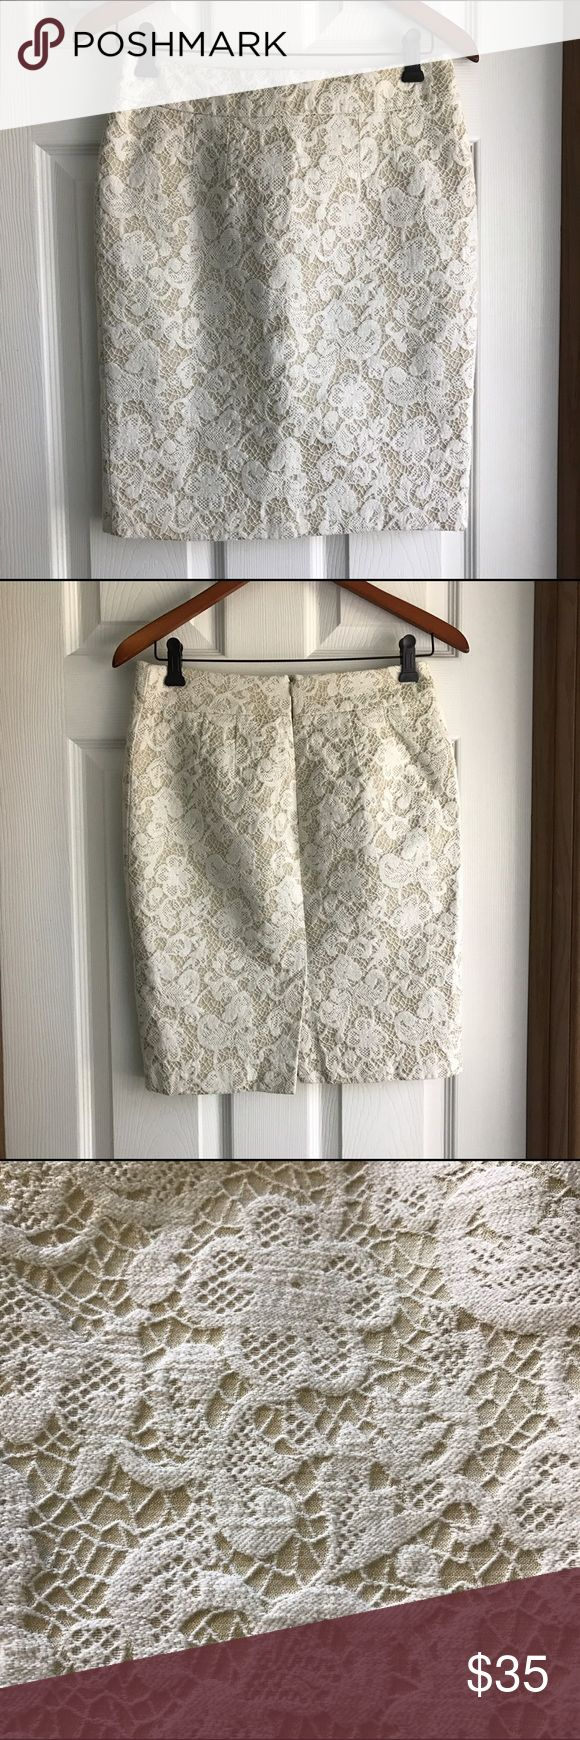 CYNTHIA ROWLEY Natural Ivory Lace Tan Pencil Skirt CYNTHIA ROWLEY Natural Ivory Lace Tan Pencil Skirt. Size 4. EUC. Back slit. Back zip. Cotton polyester and fully lined. Questions? Just ask! Measurements in last photo. Offers welcome! Cynthia Rowley Skirts Pencil